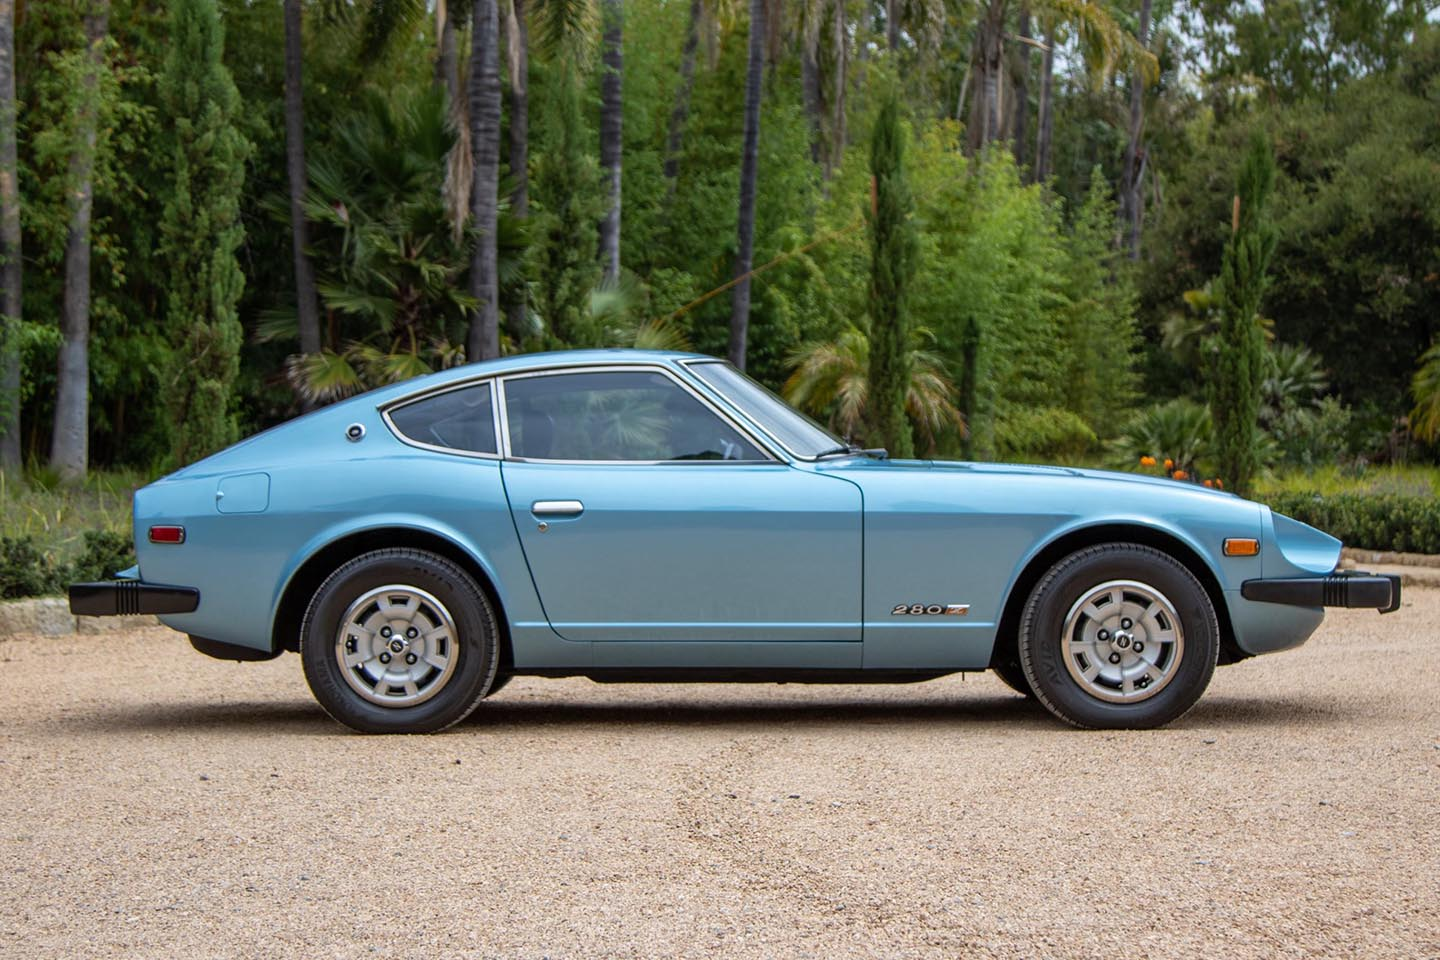 All-Original 14k-Mile 1977 Datsun 280Z